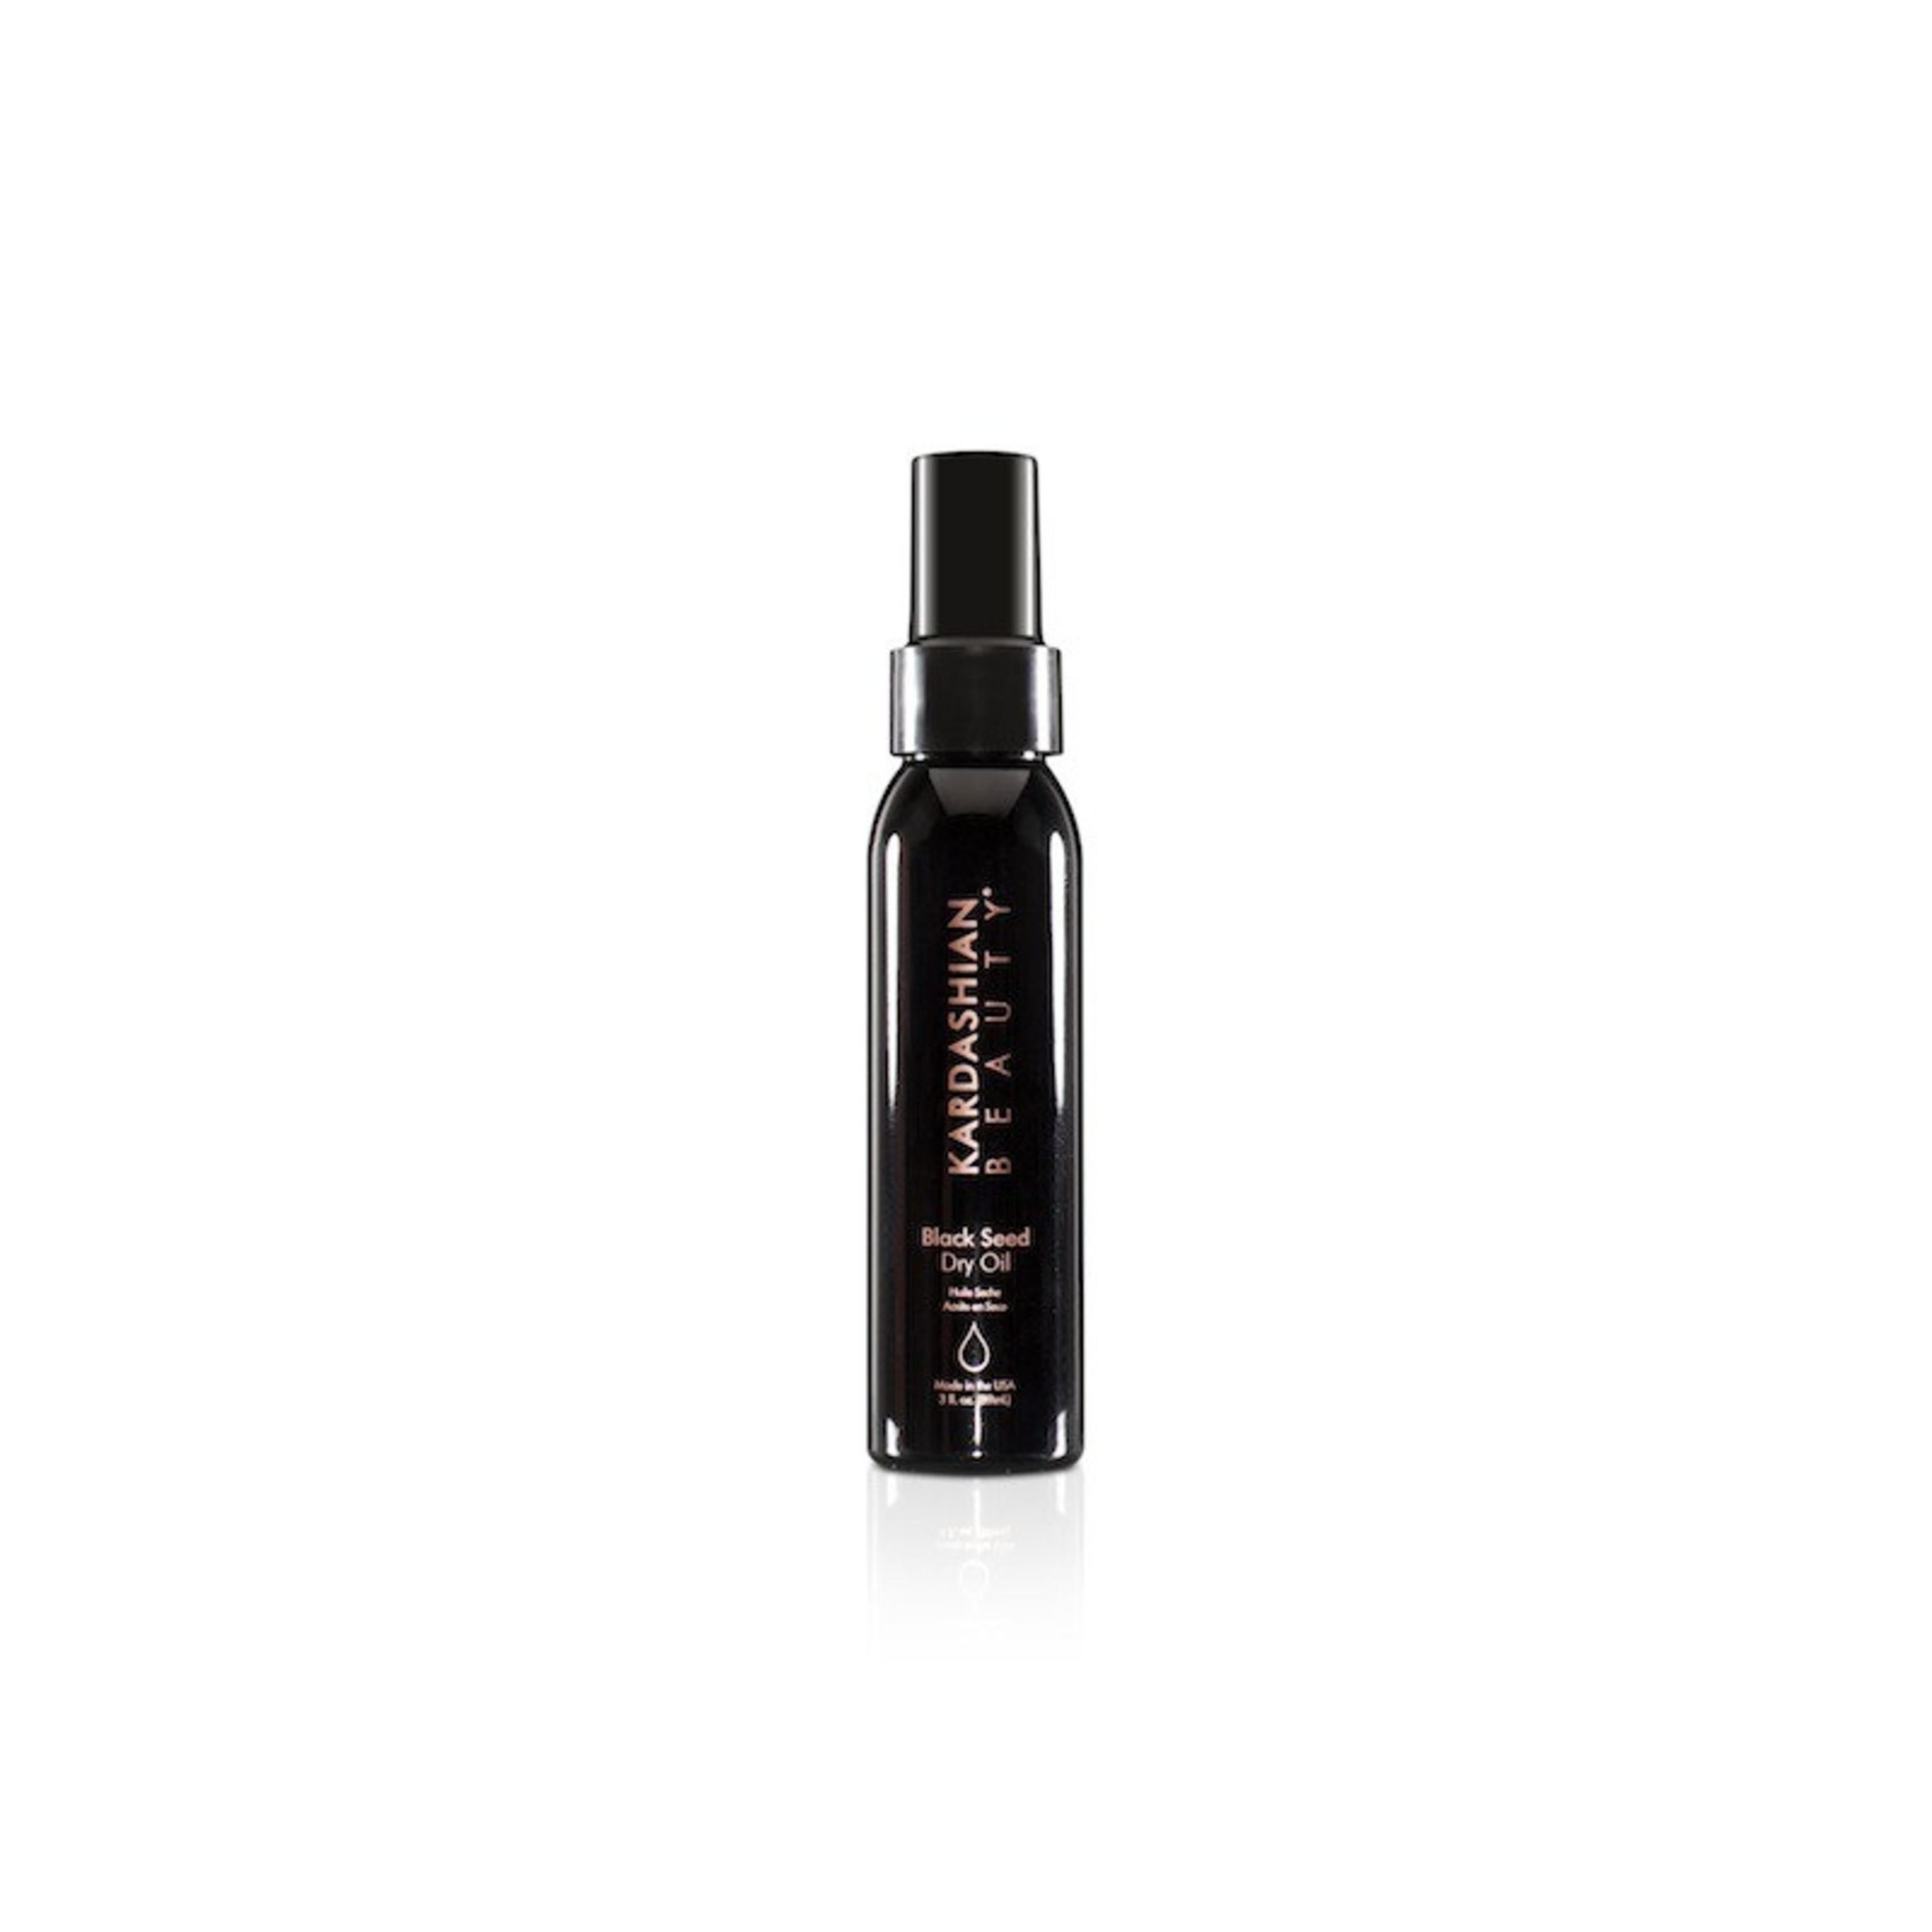 CHI Kardashian Beauty Black Black Seed Dry Oil - Cухое масло черного тмина